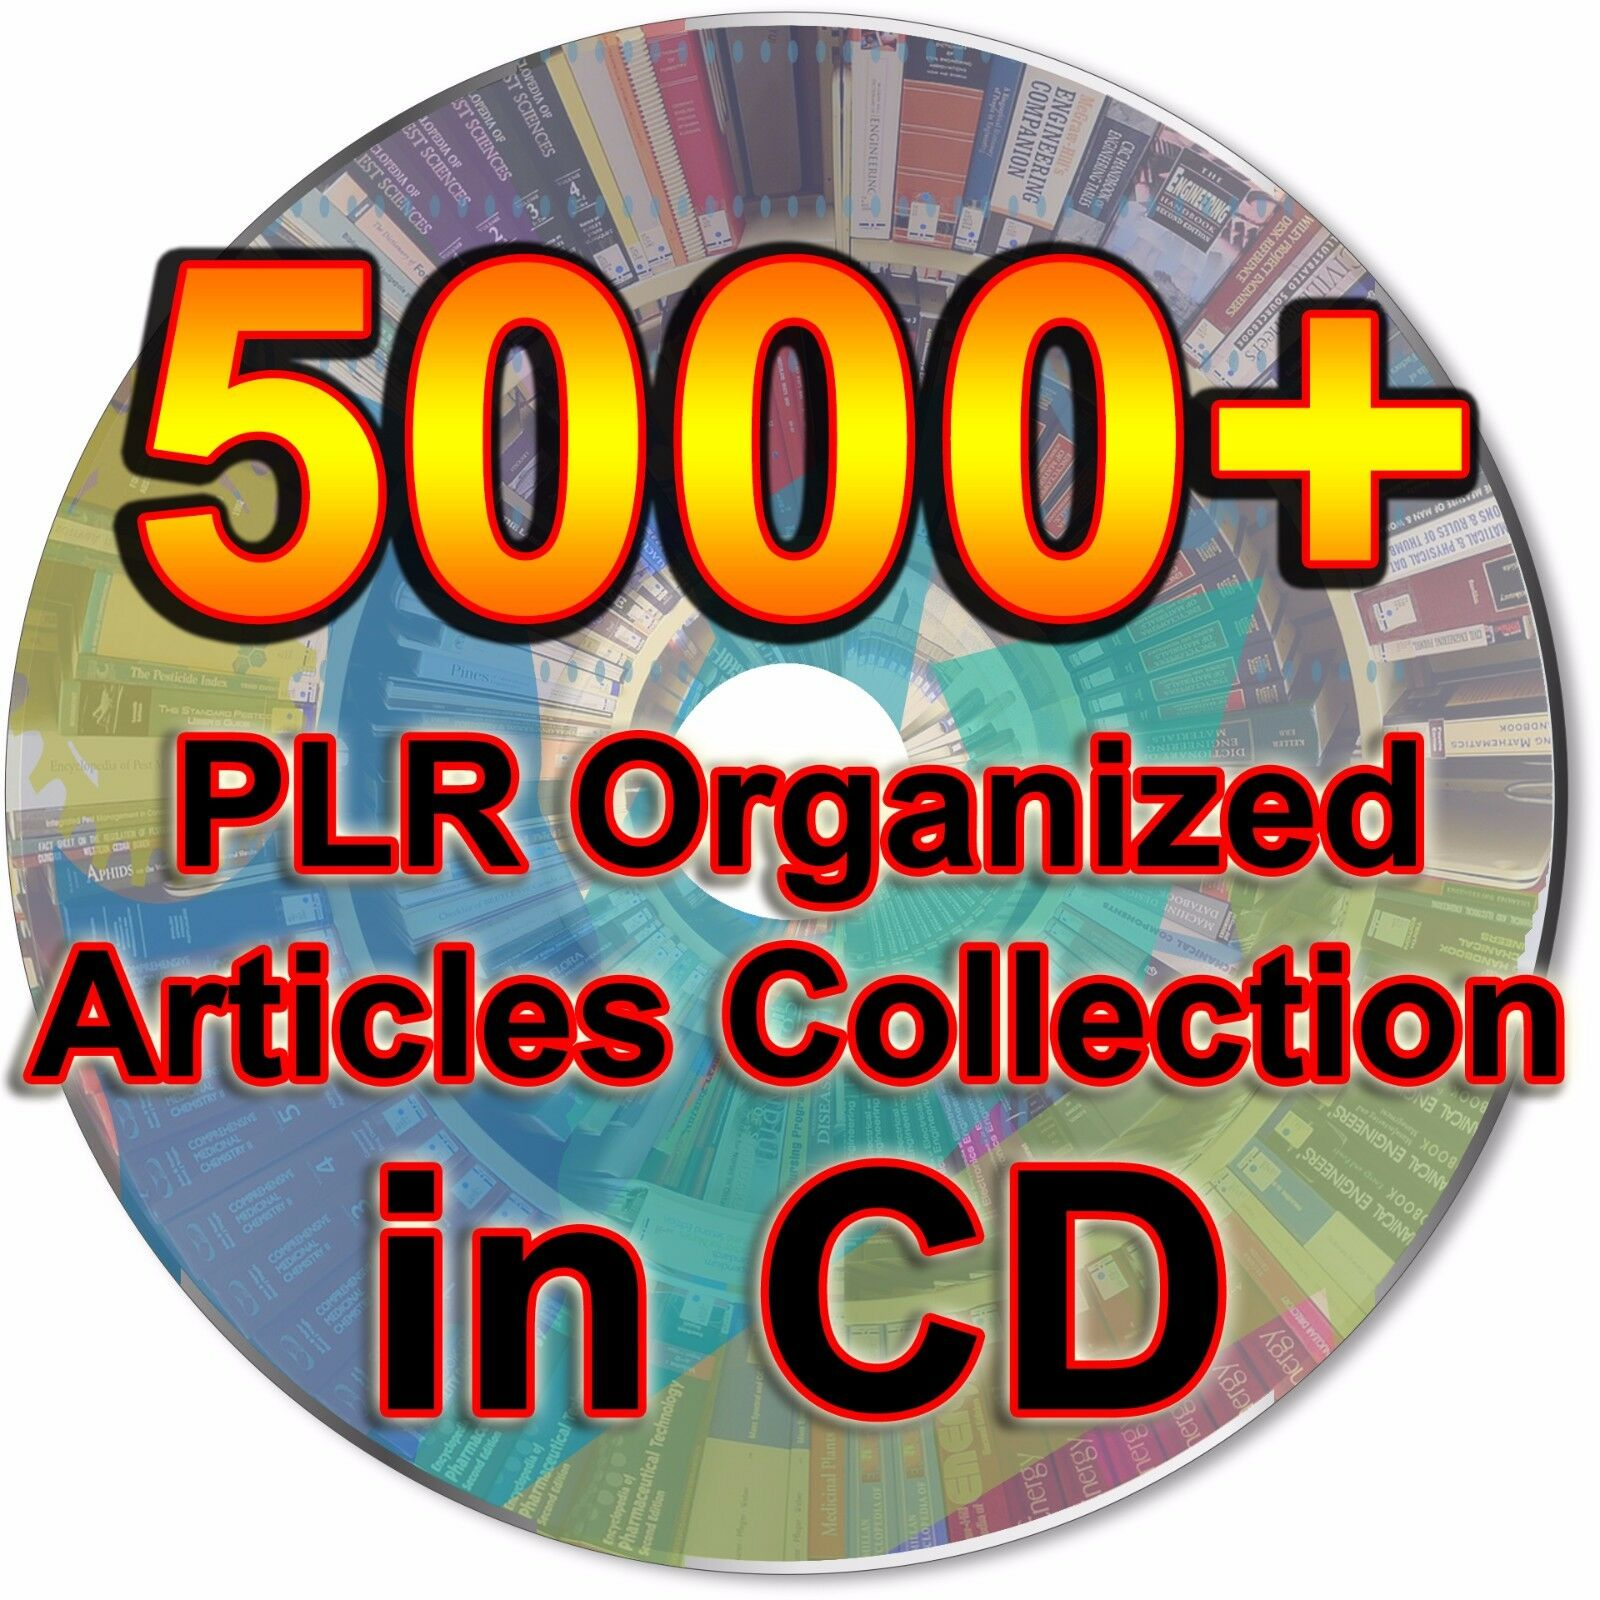 5000+ PLR Organized Articles Collection Pack RoyaltyFree Blog Website Content CD